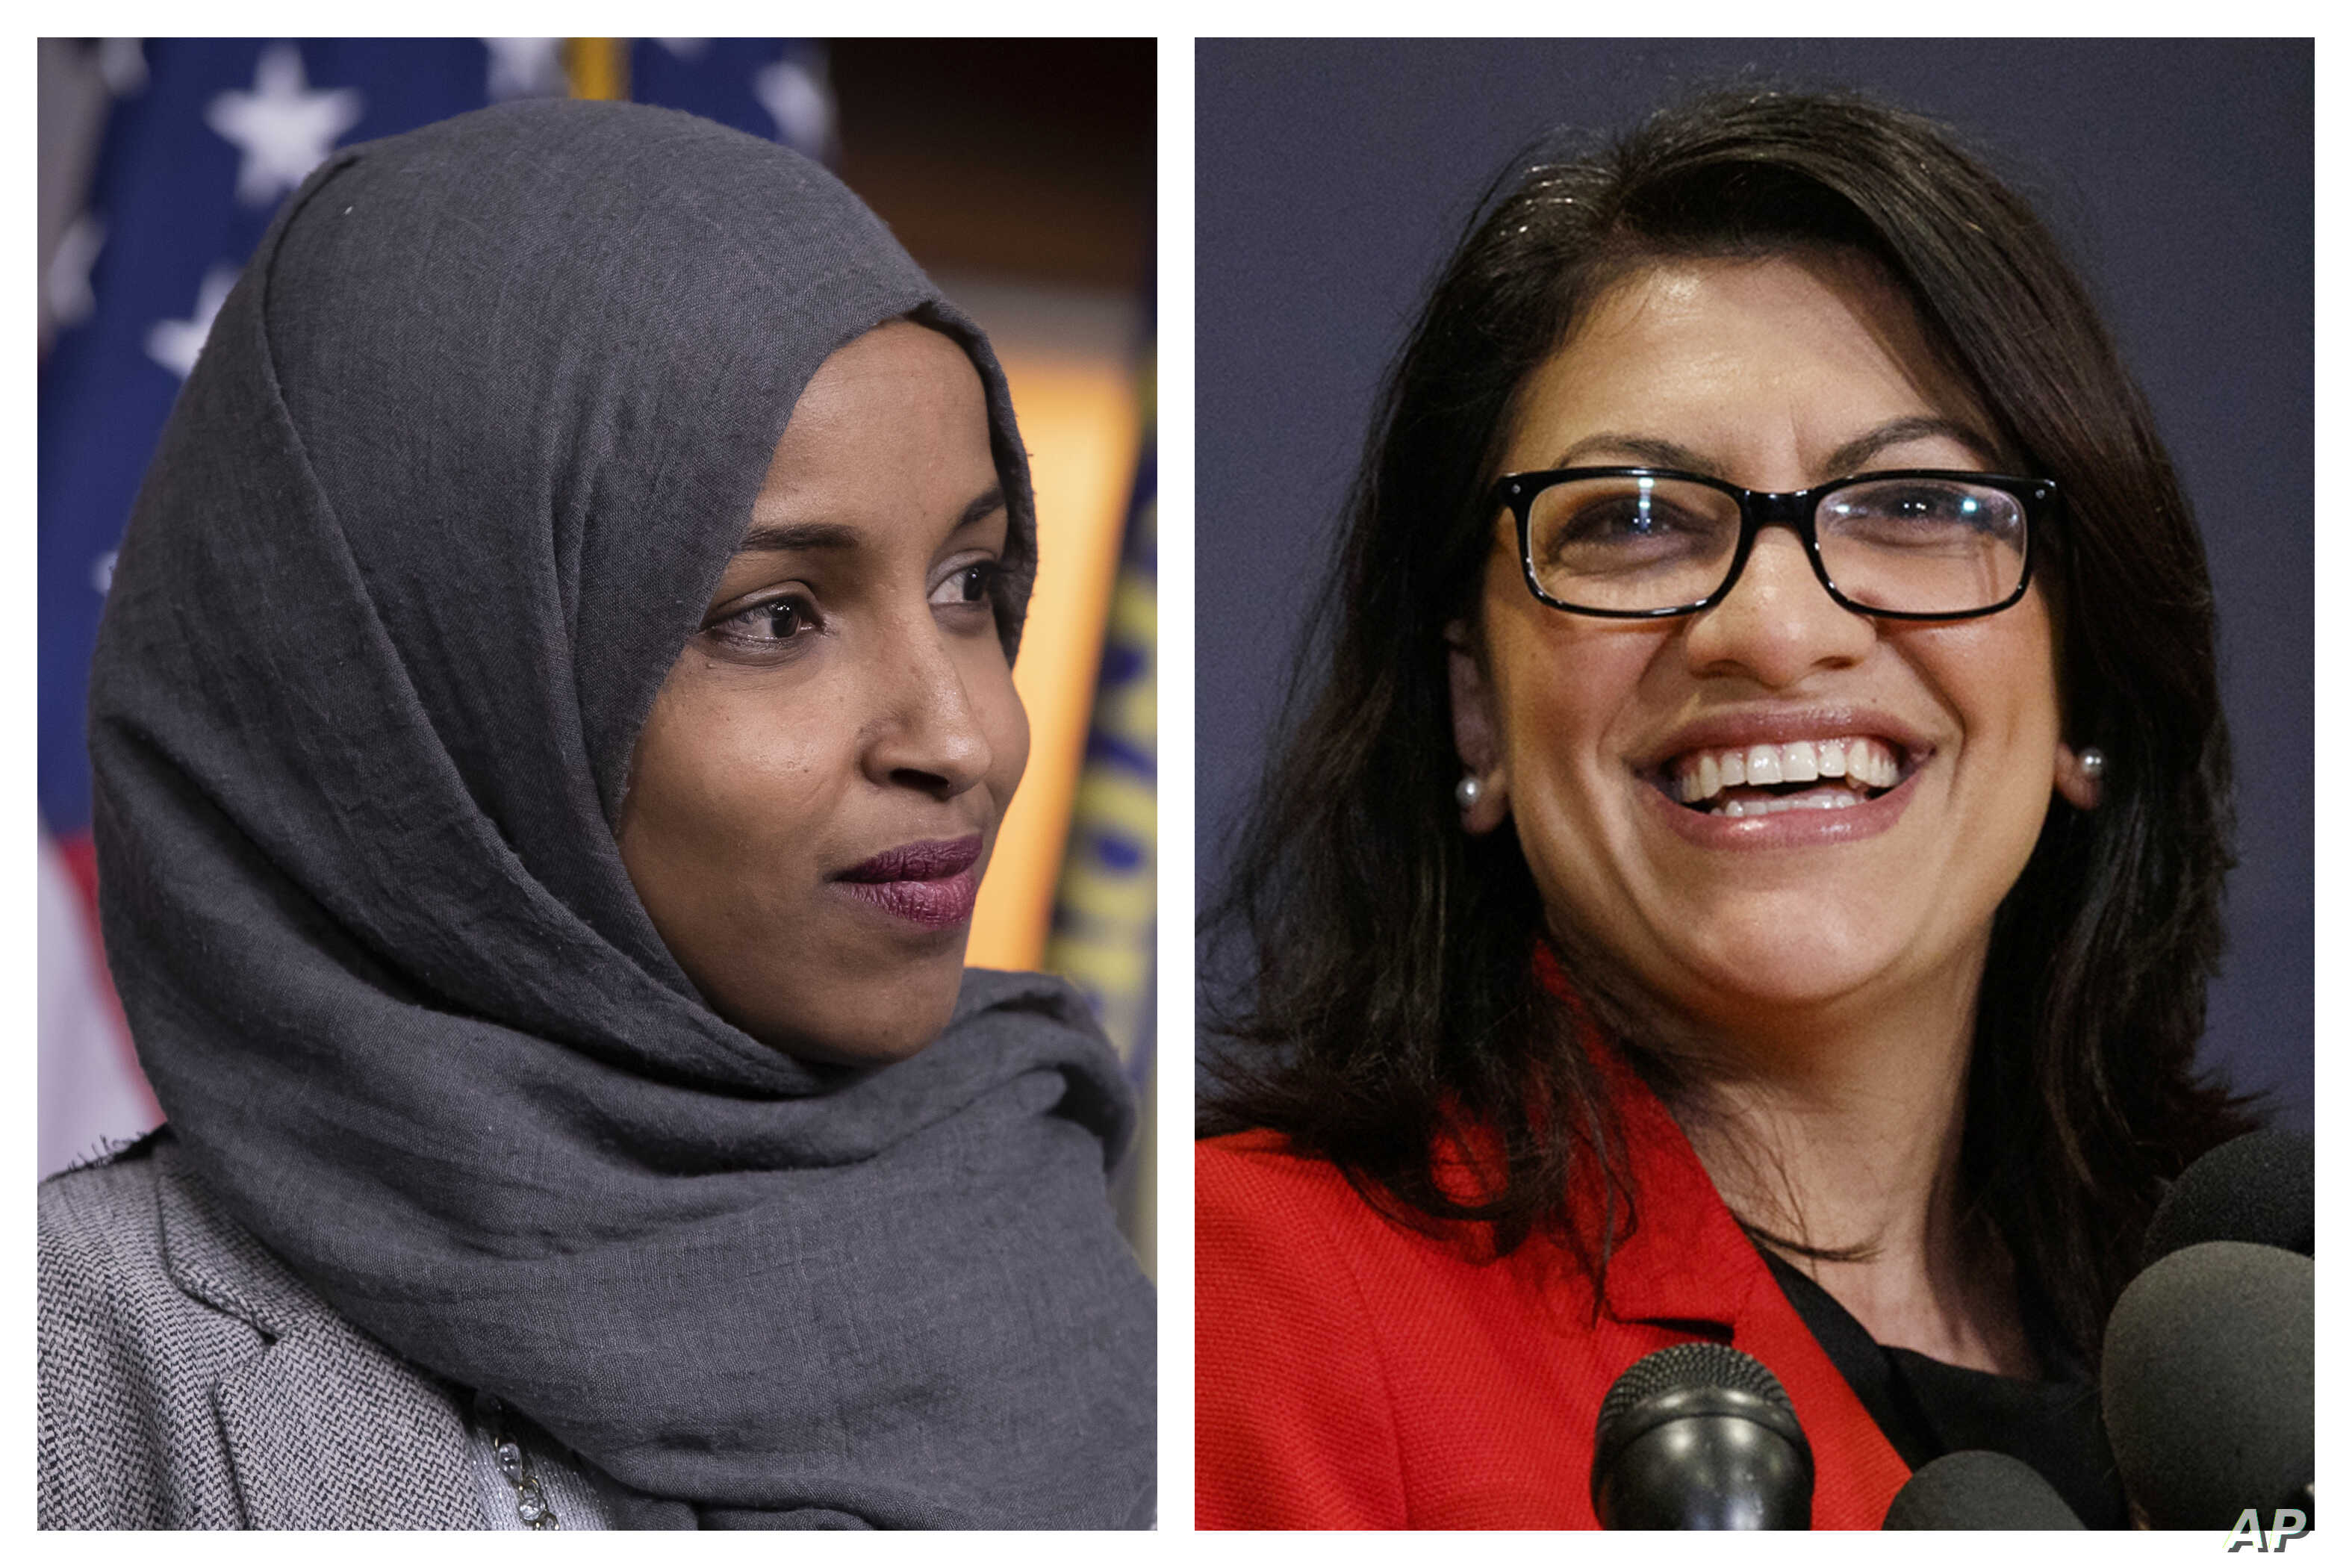 Muslim-American Congresswomen Prompt Saudi Alarm | Voice of America